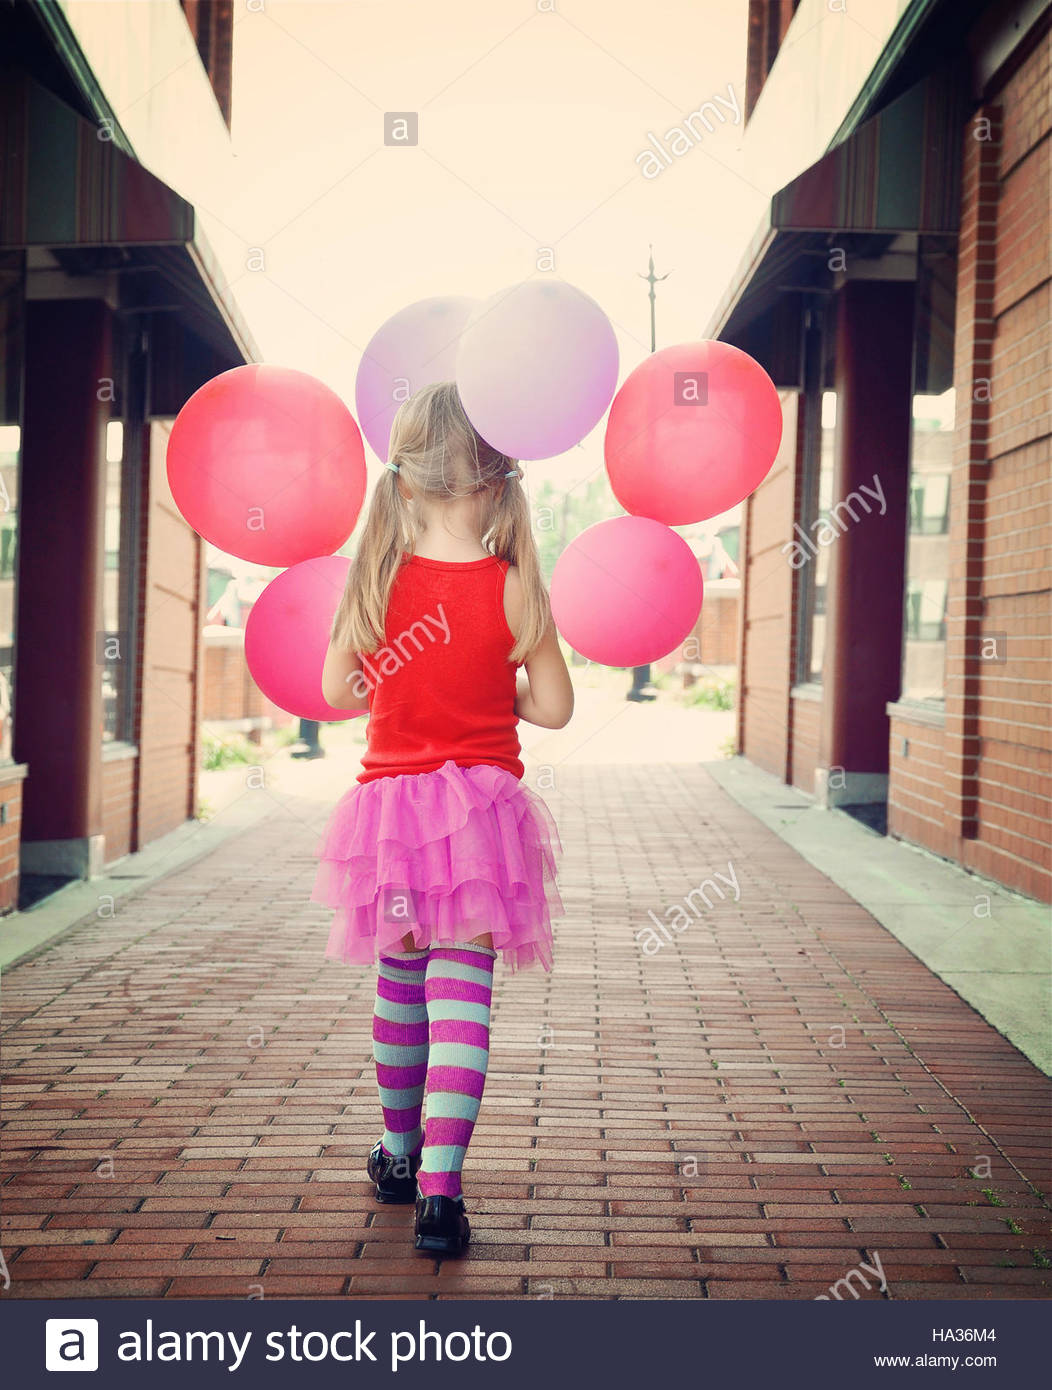 A little girl is holding colorful balloons walking down a brick road outside for a happiness or freedom concept. - Stock Image